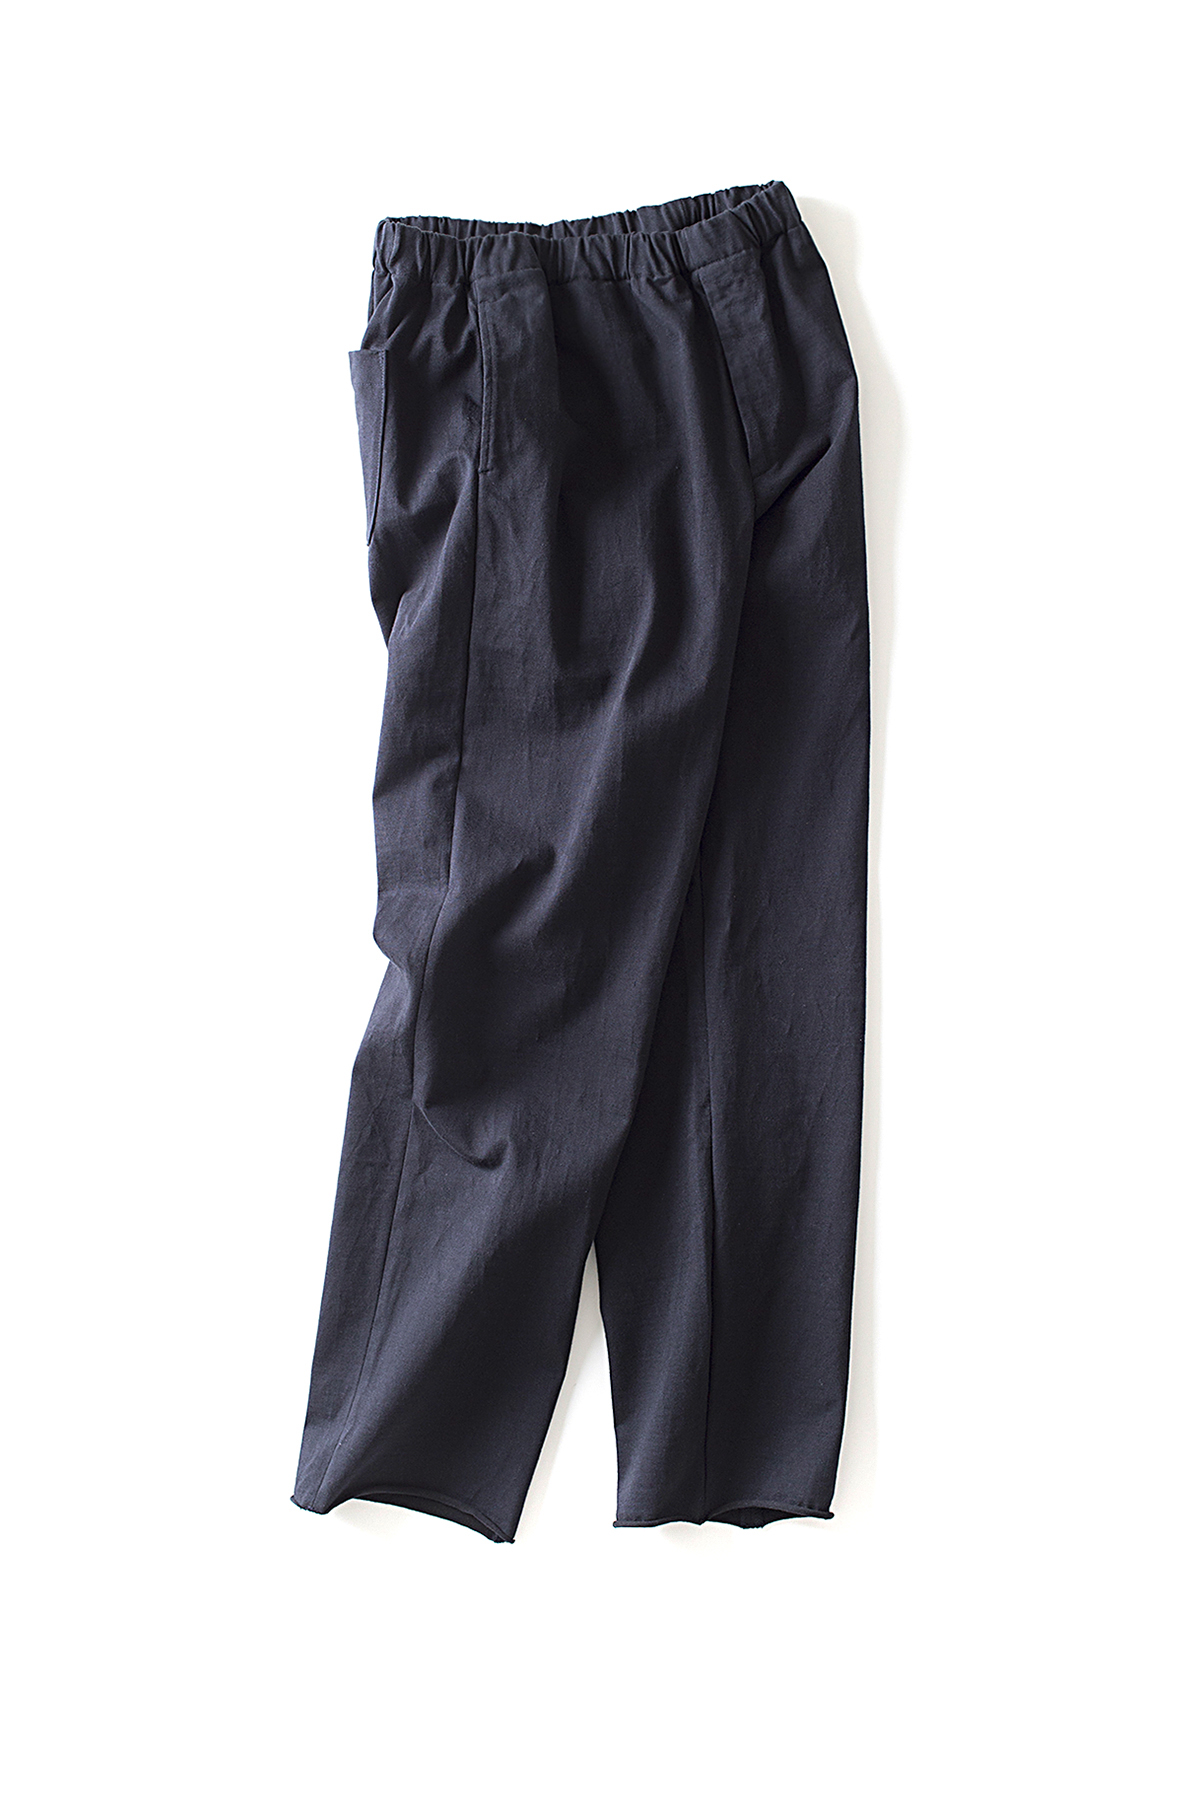 Auralee : Stand-Up Easy Pants (Navy Black)